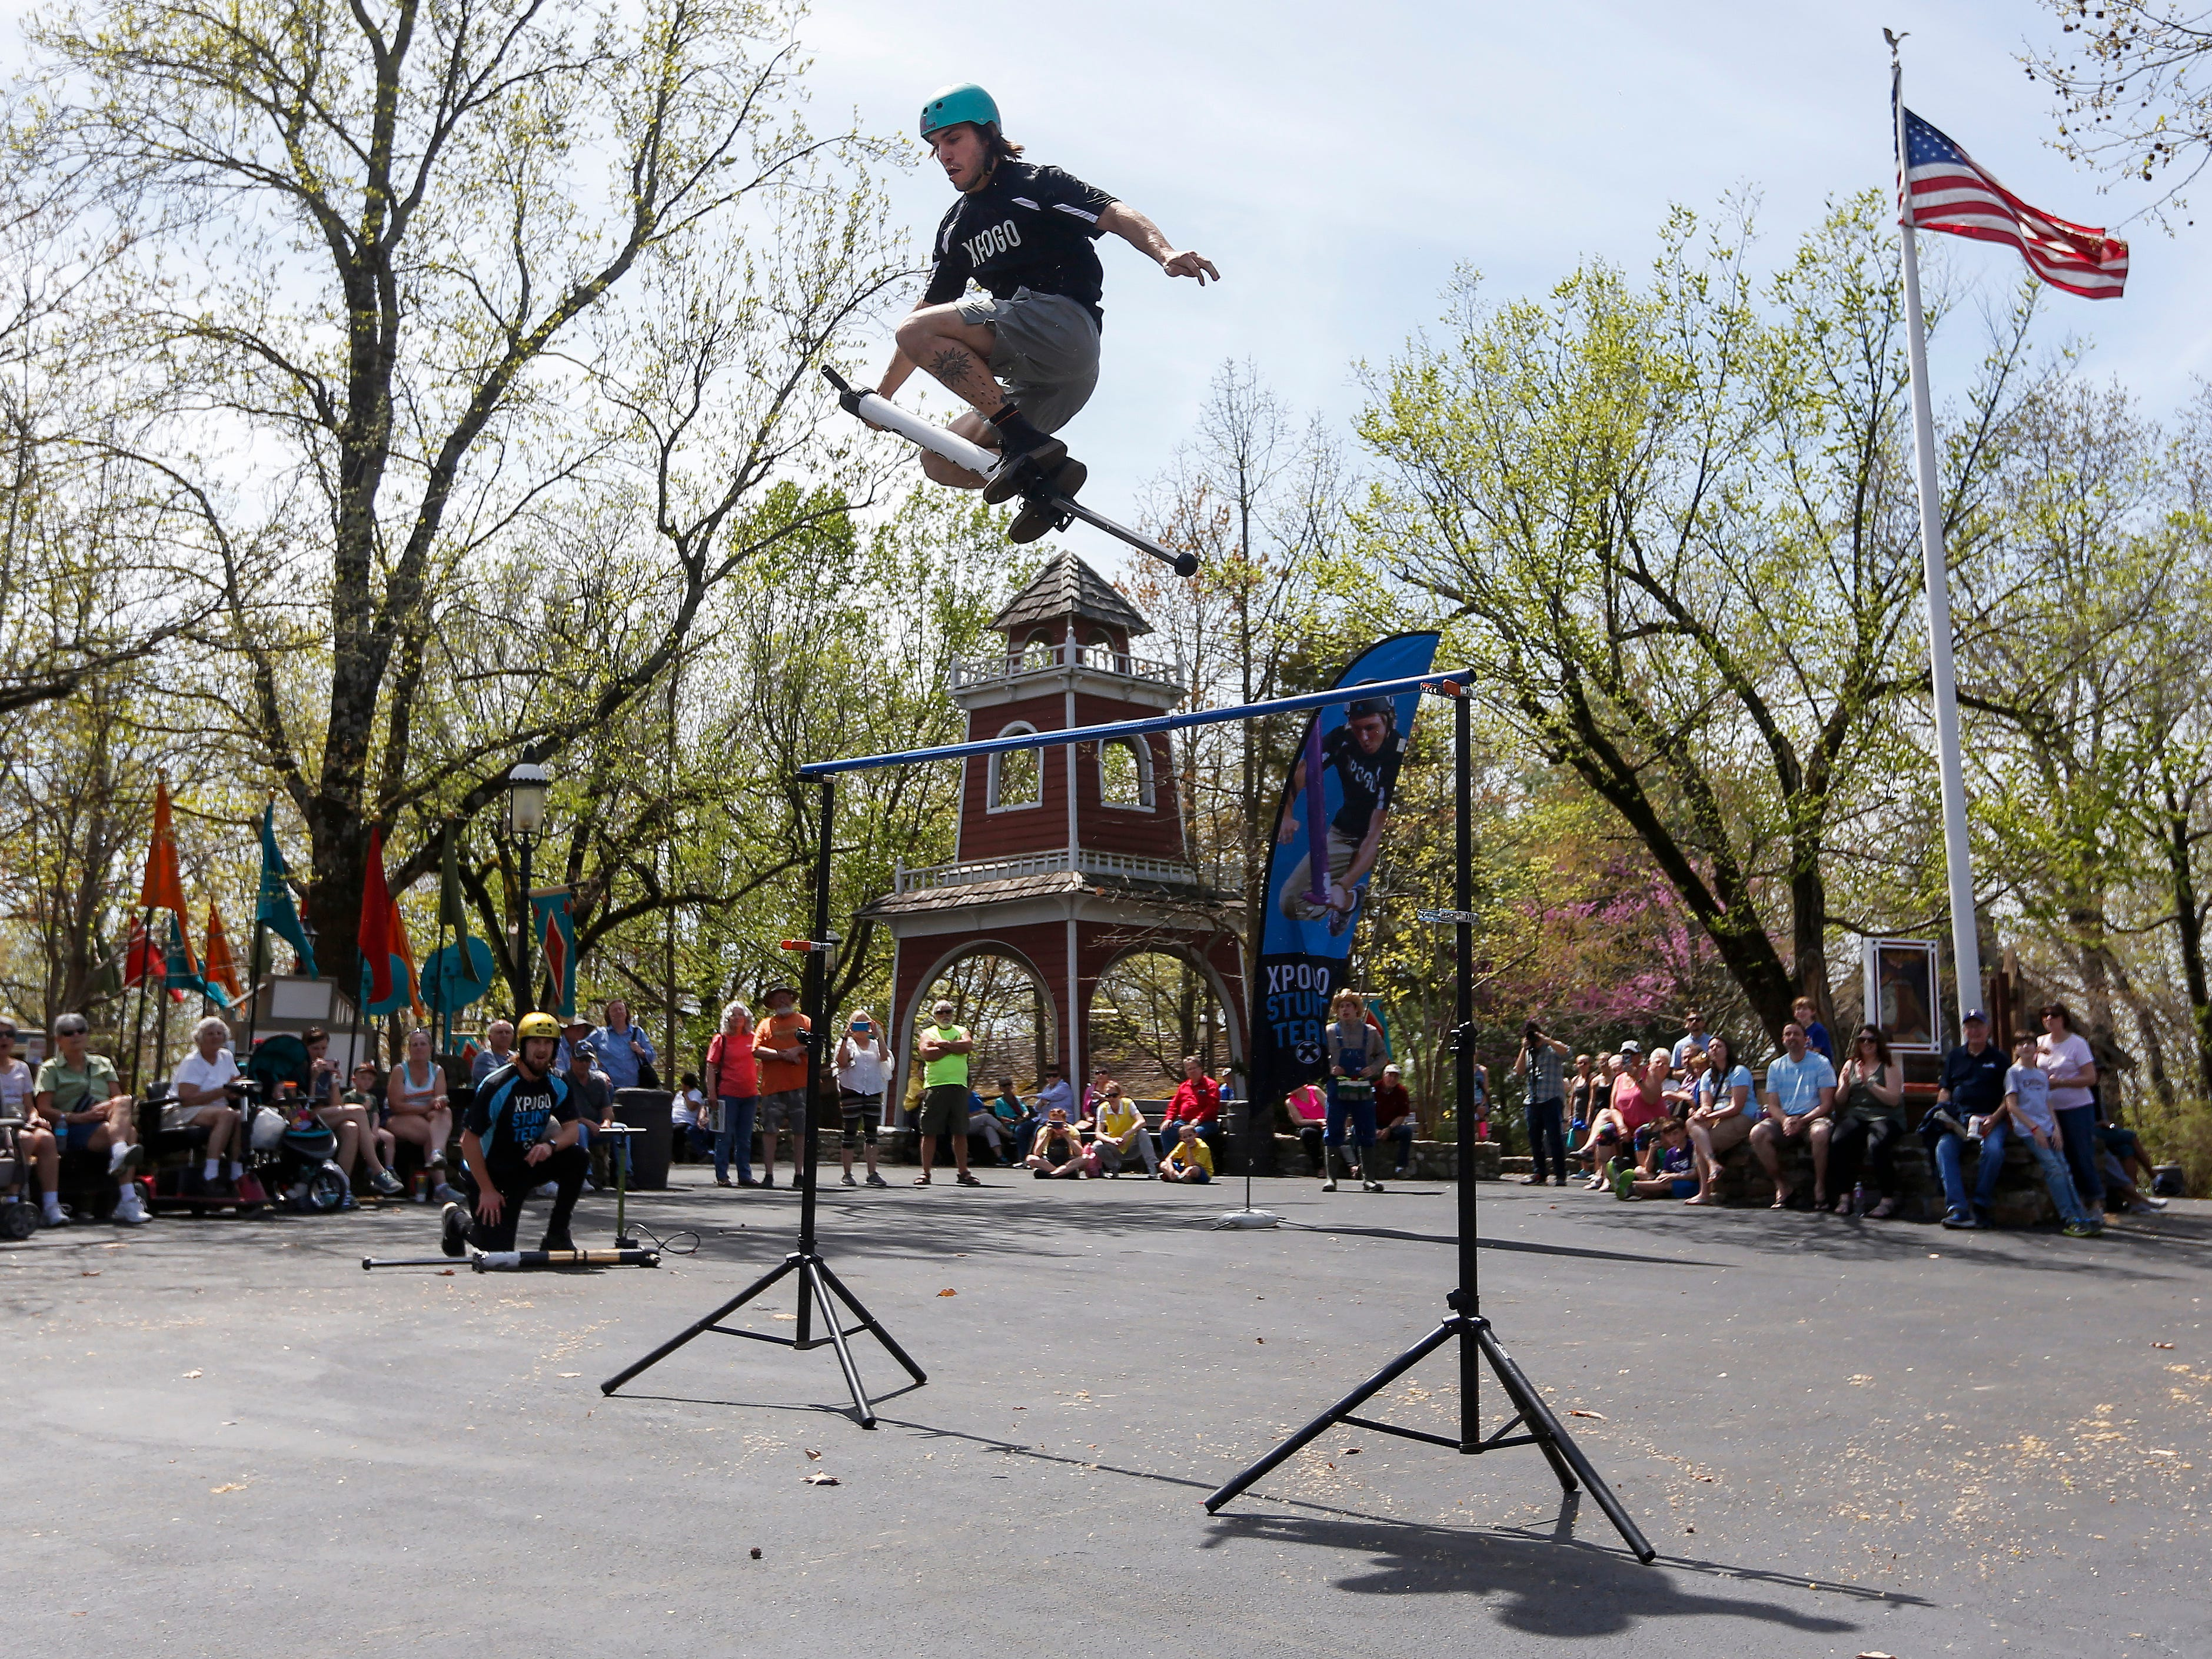 Russ Kaus, a member of the X-Pogo Stunt Team, easily clears the high jump as a part of Festival of Wonder on Wednesday, April 10, 2019 at Silver Dollar City. The event runs Wednesdays through Sundays, April 10-28.